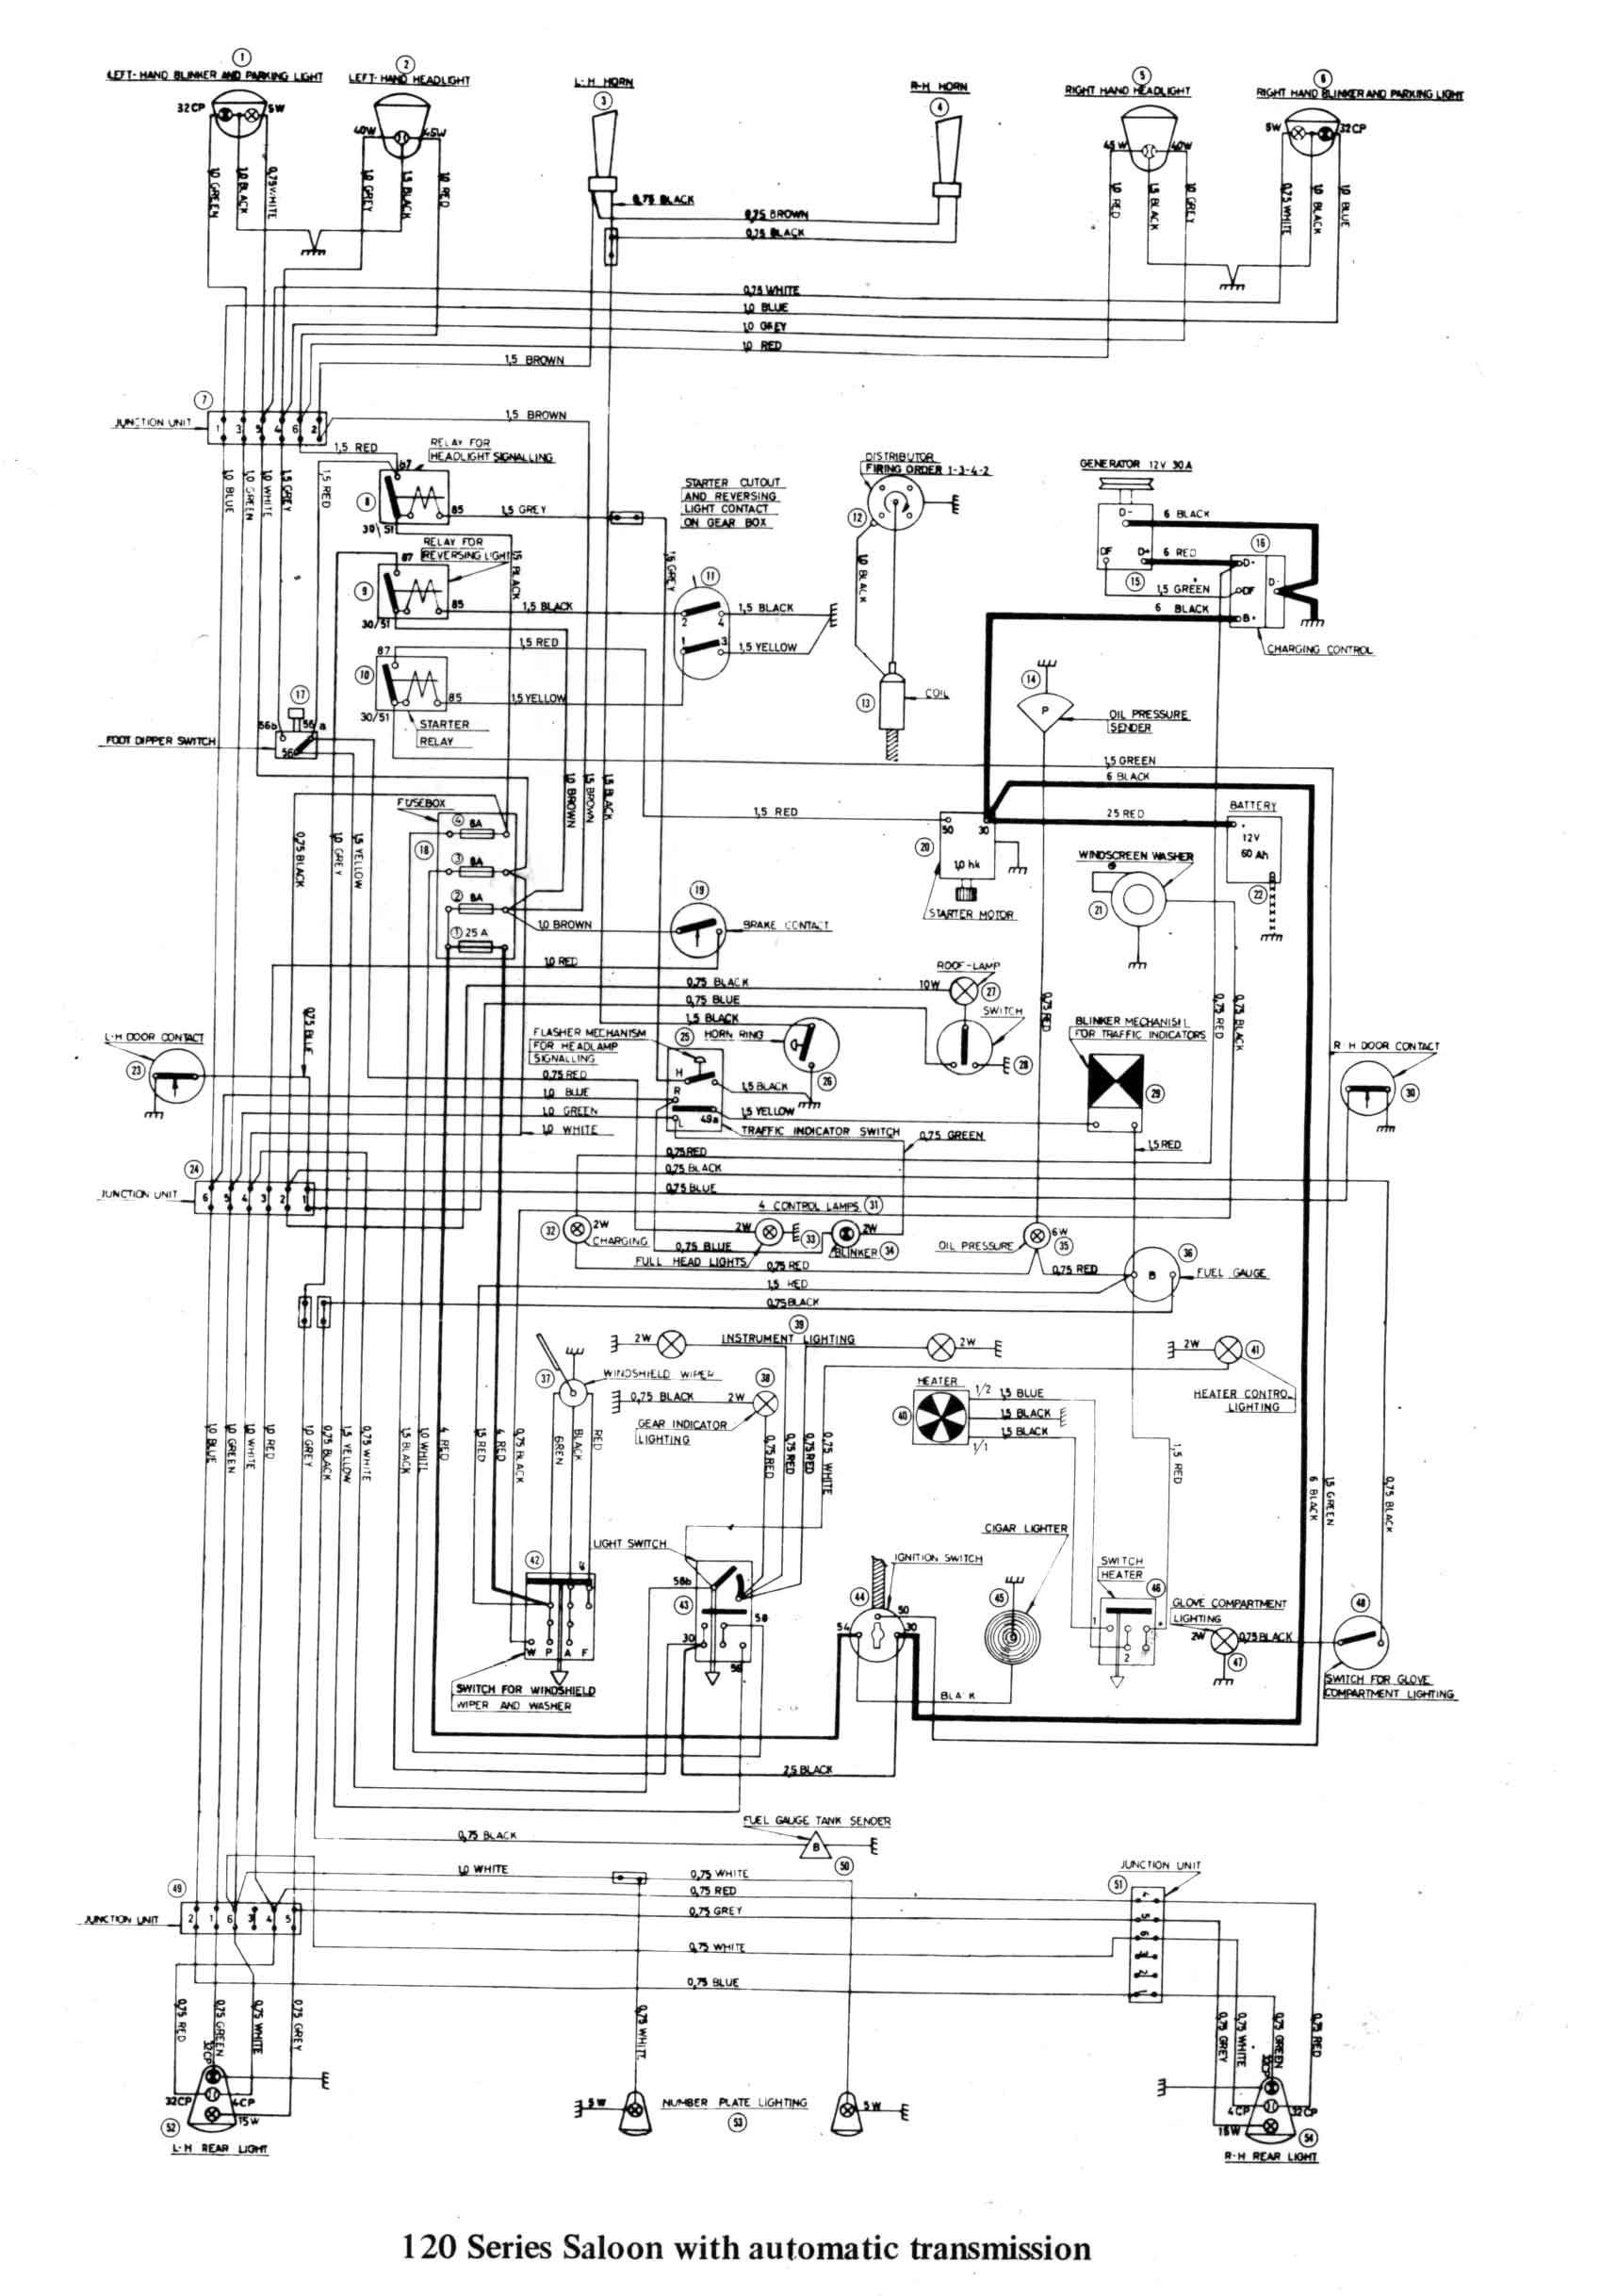 a784cc0bad6ca80b6caa56a16865660a 2002 volvo wiring diagrams free download wiring diagrams schematics